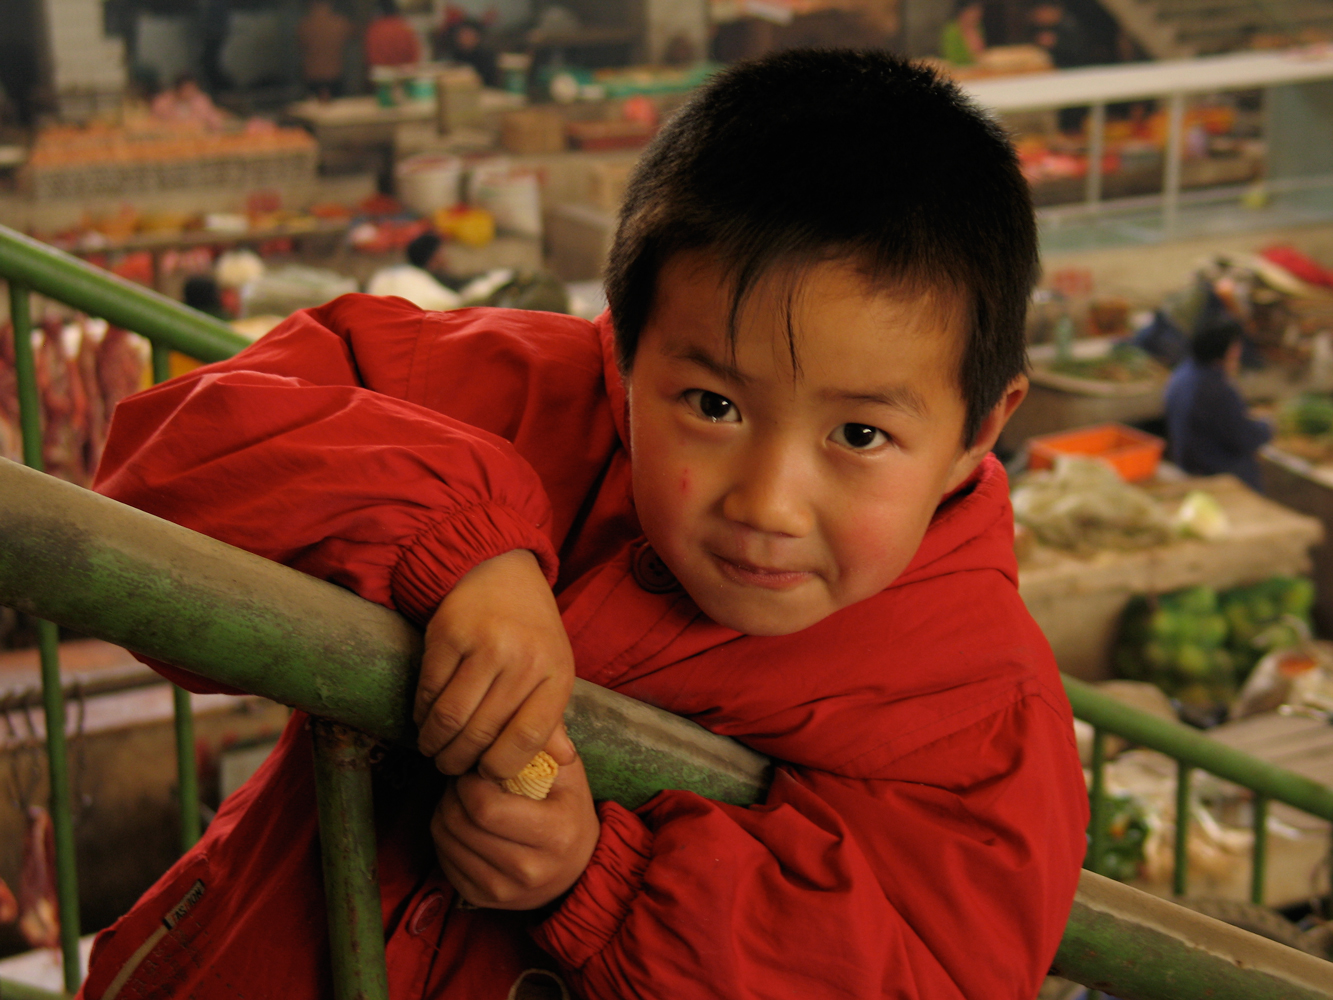 Chinese boy in red, Richard Lund, depth cue of focus,